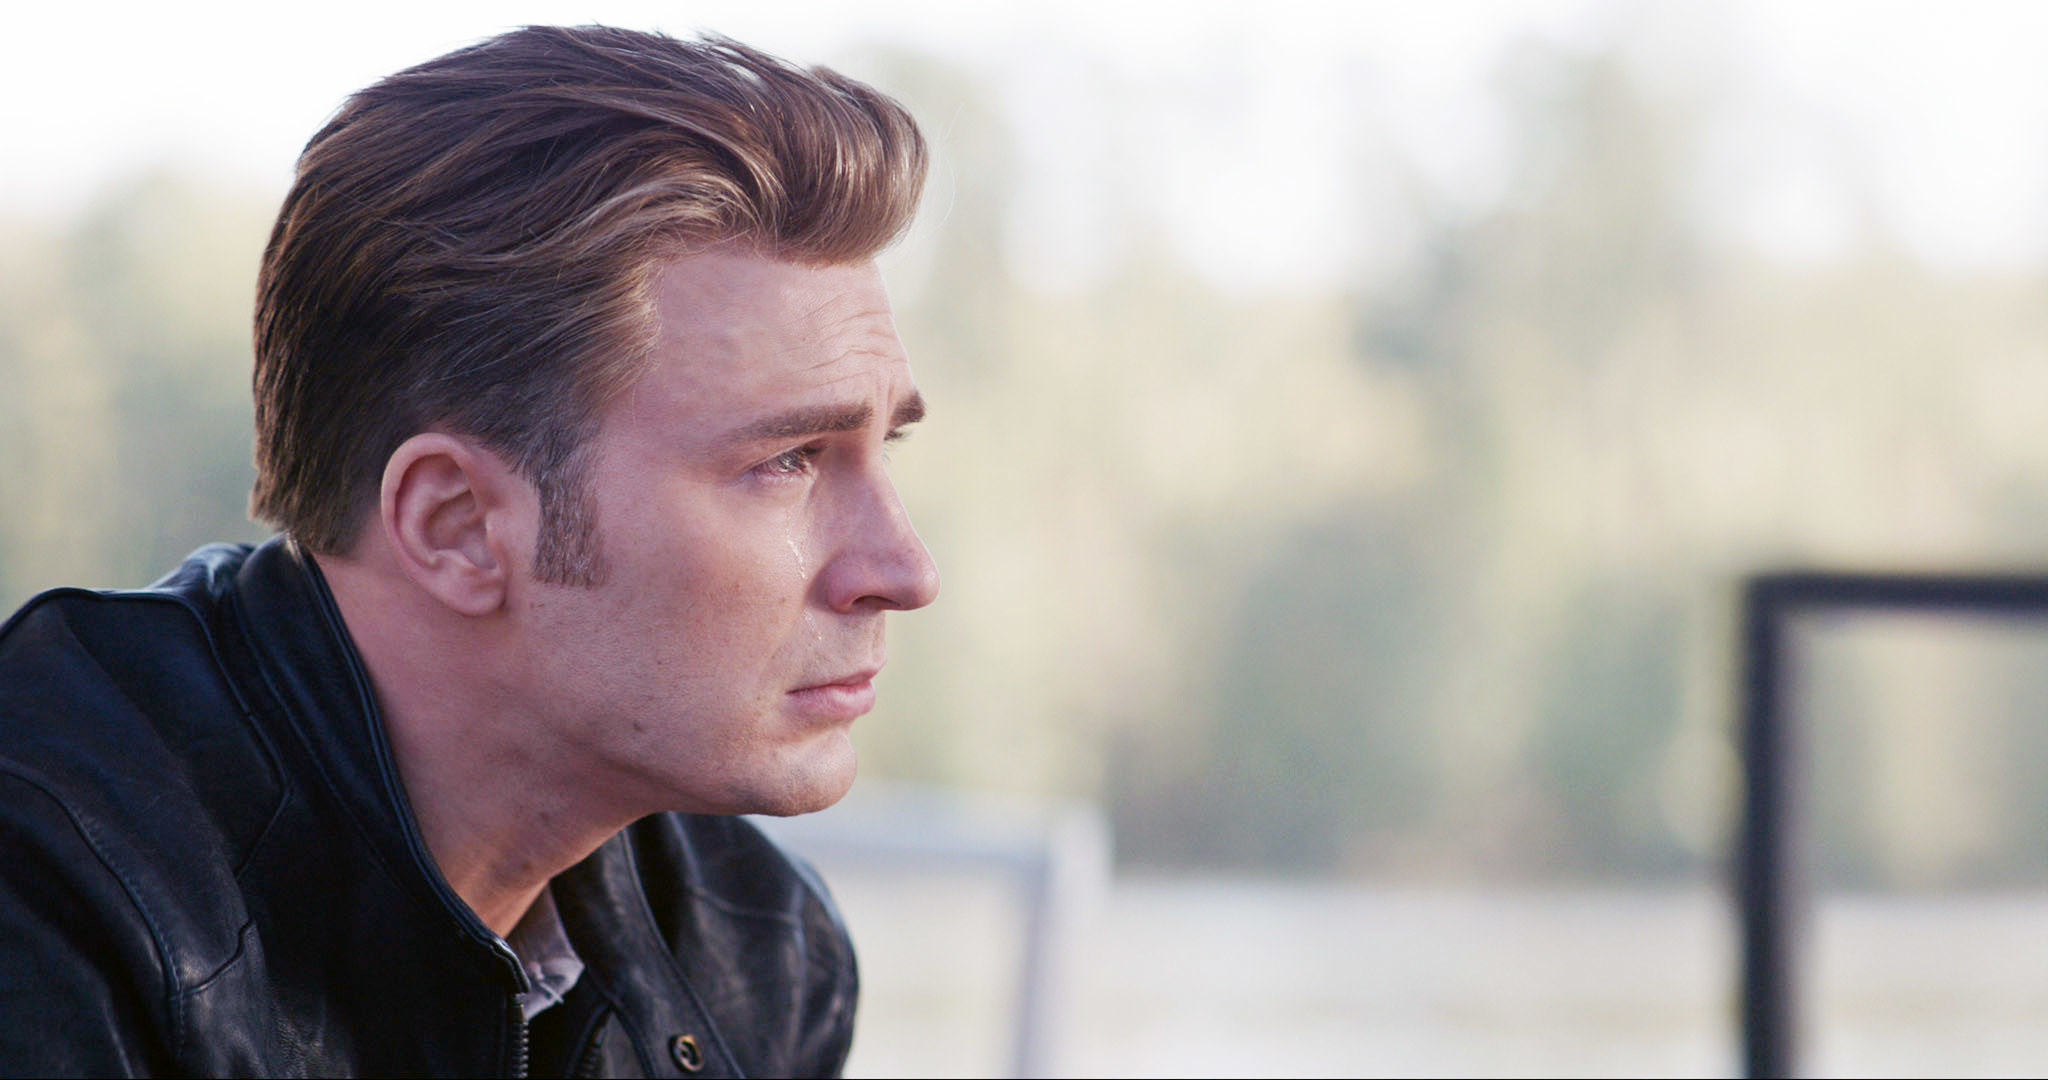 Photo of Steve crying and looking into the distance in Endgame